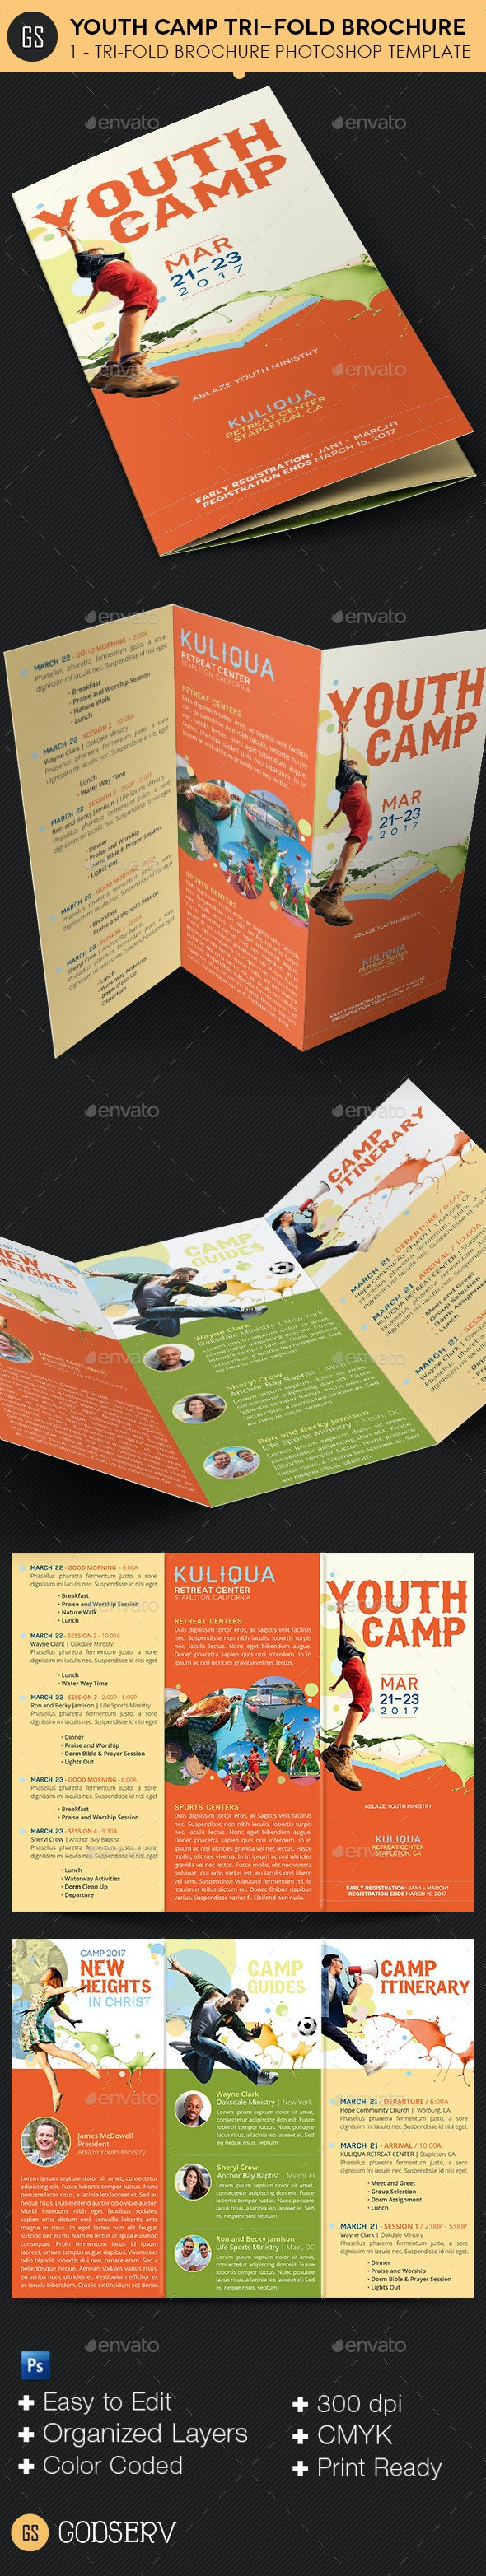 Youth Camp Tri-Fold Brochure Template - Informational Brochures